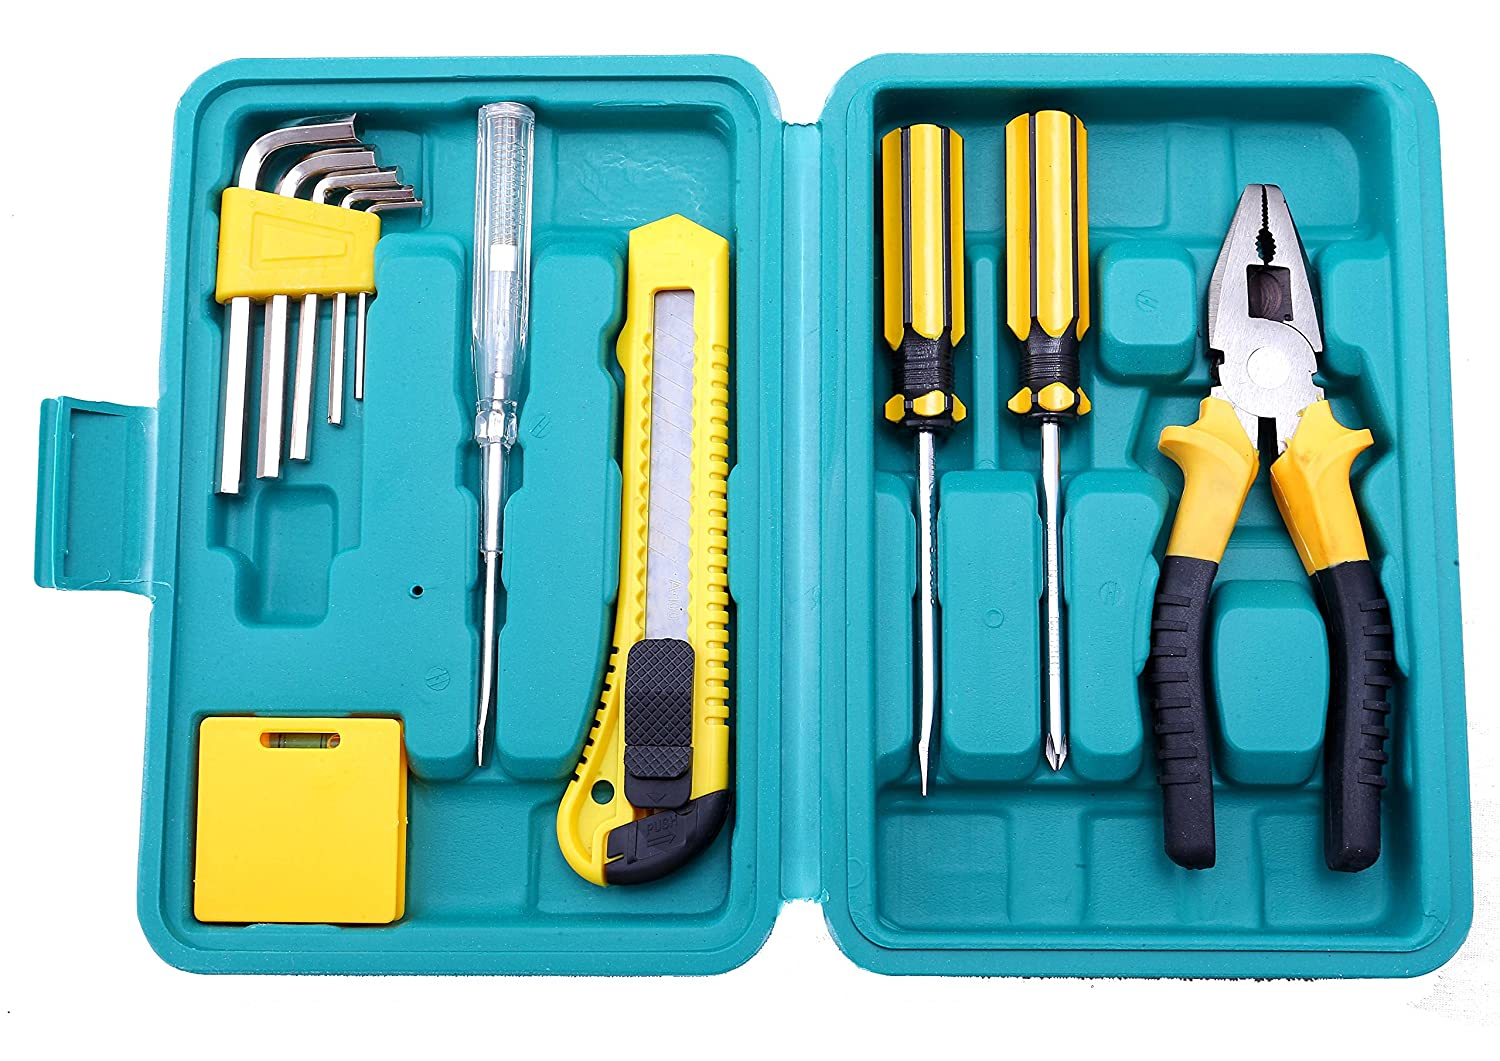 NOVICZ 12 Pcs Home Tool Set with Box / Home Repair Tool Kit with Carry Case